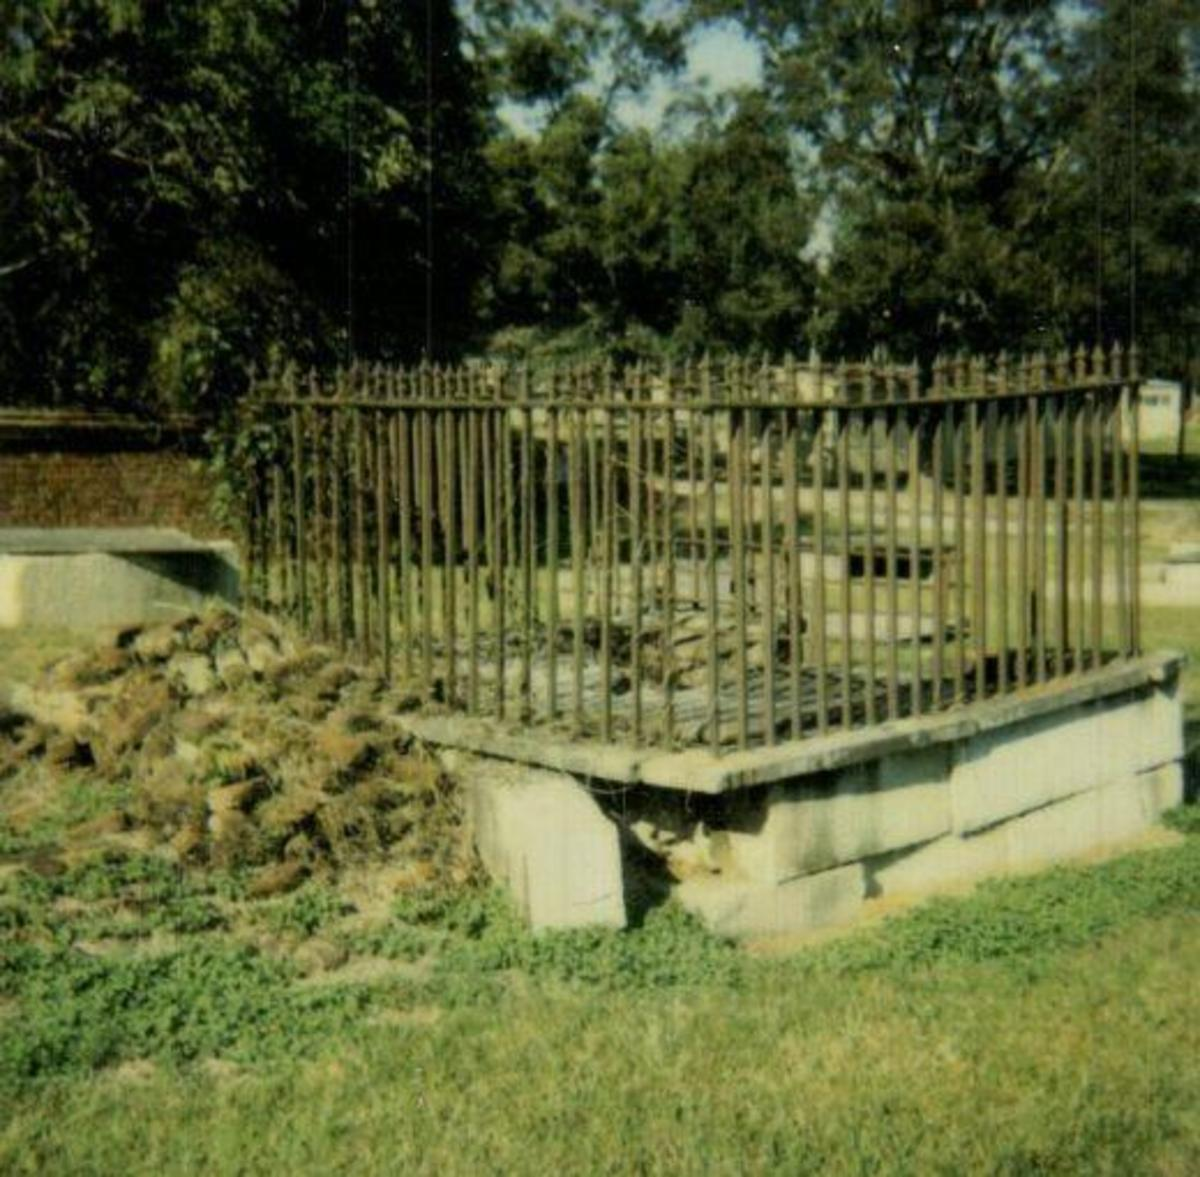 The Graveyard on Boundary Street in Newberry South Carolina is one of the spookiest places on earth.